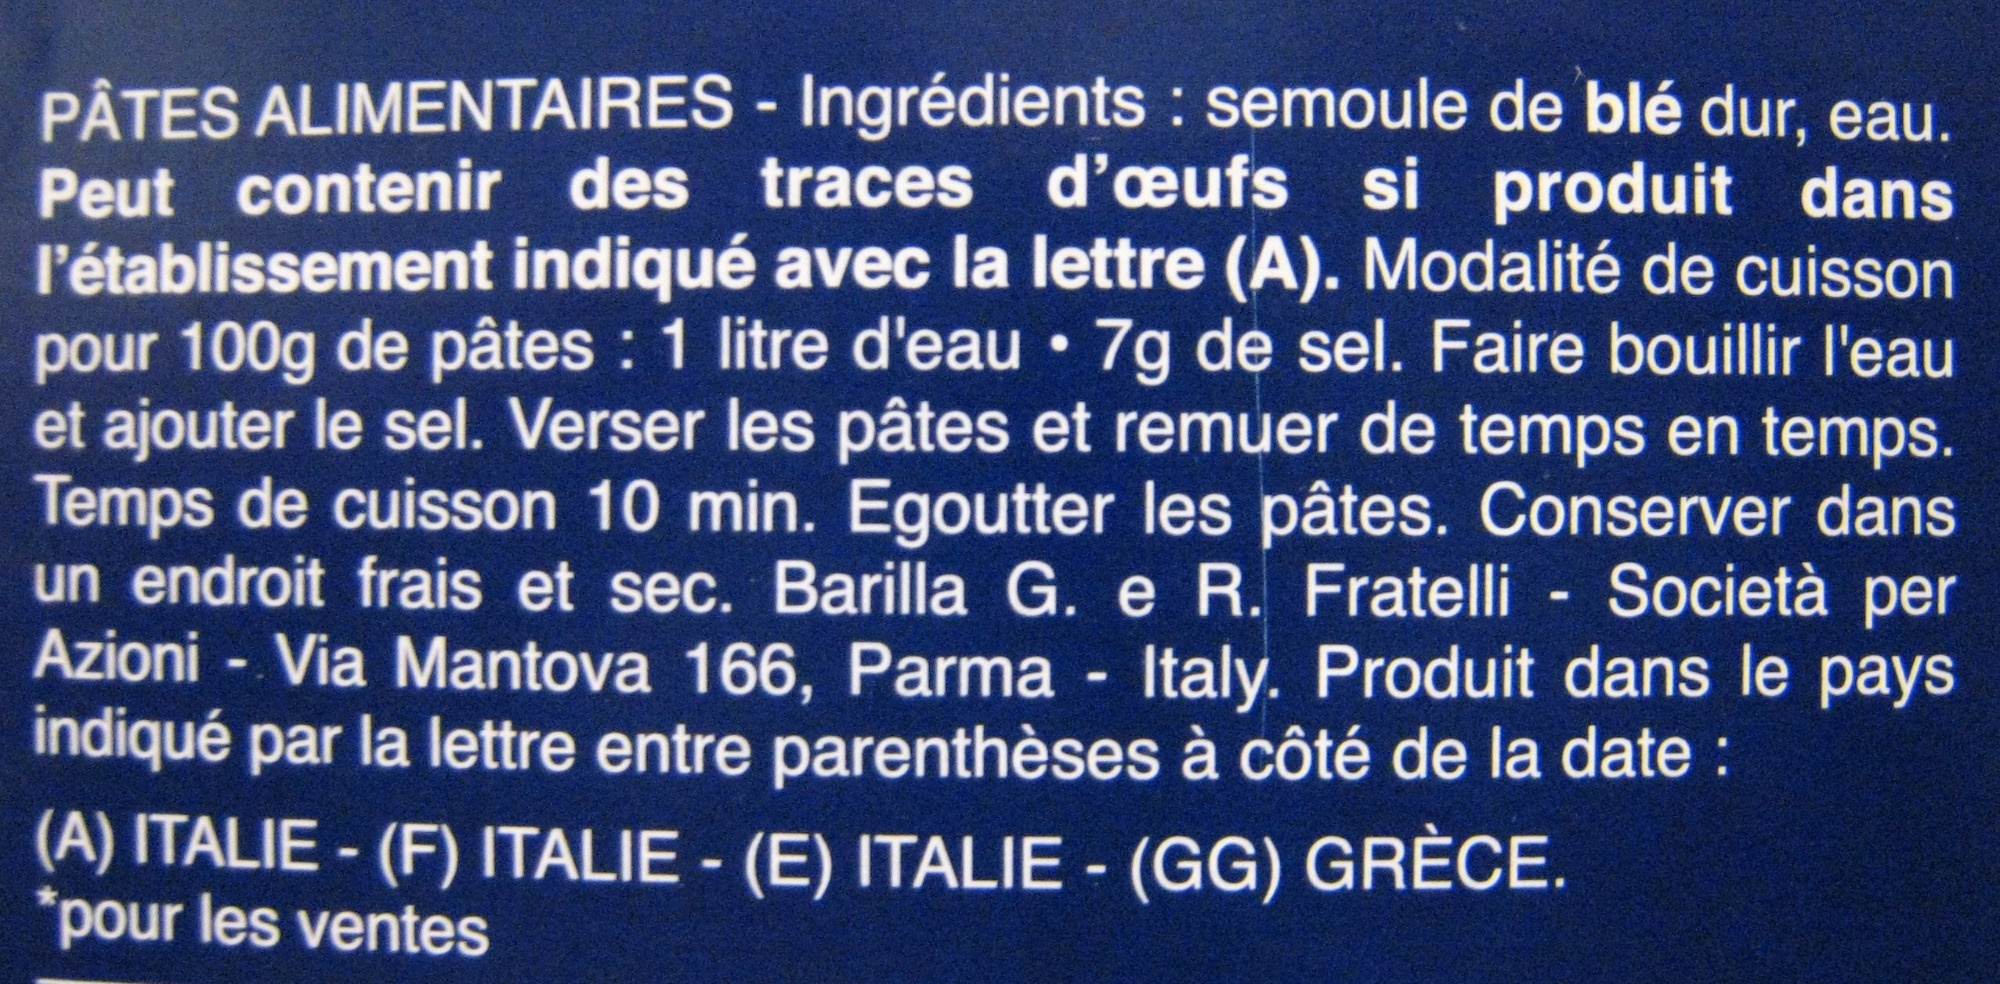 Farfalle n. 65 - Ingredients